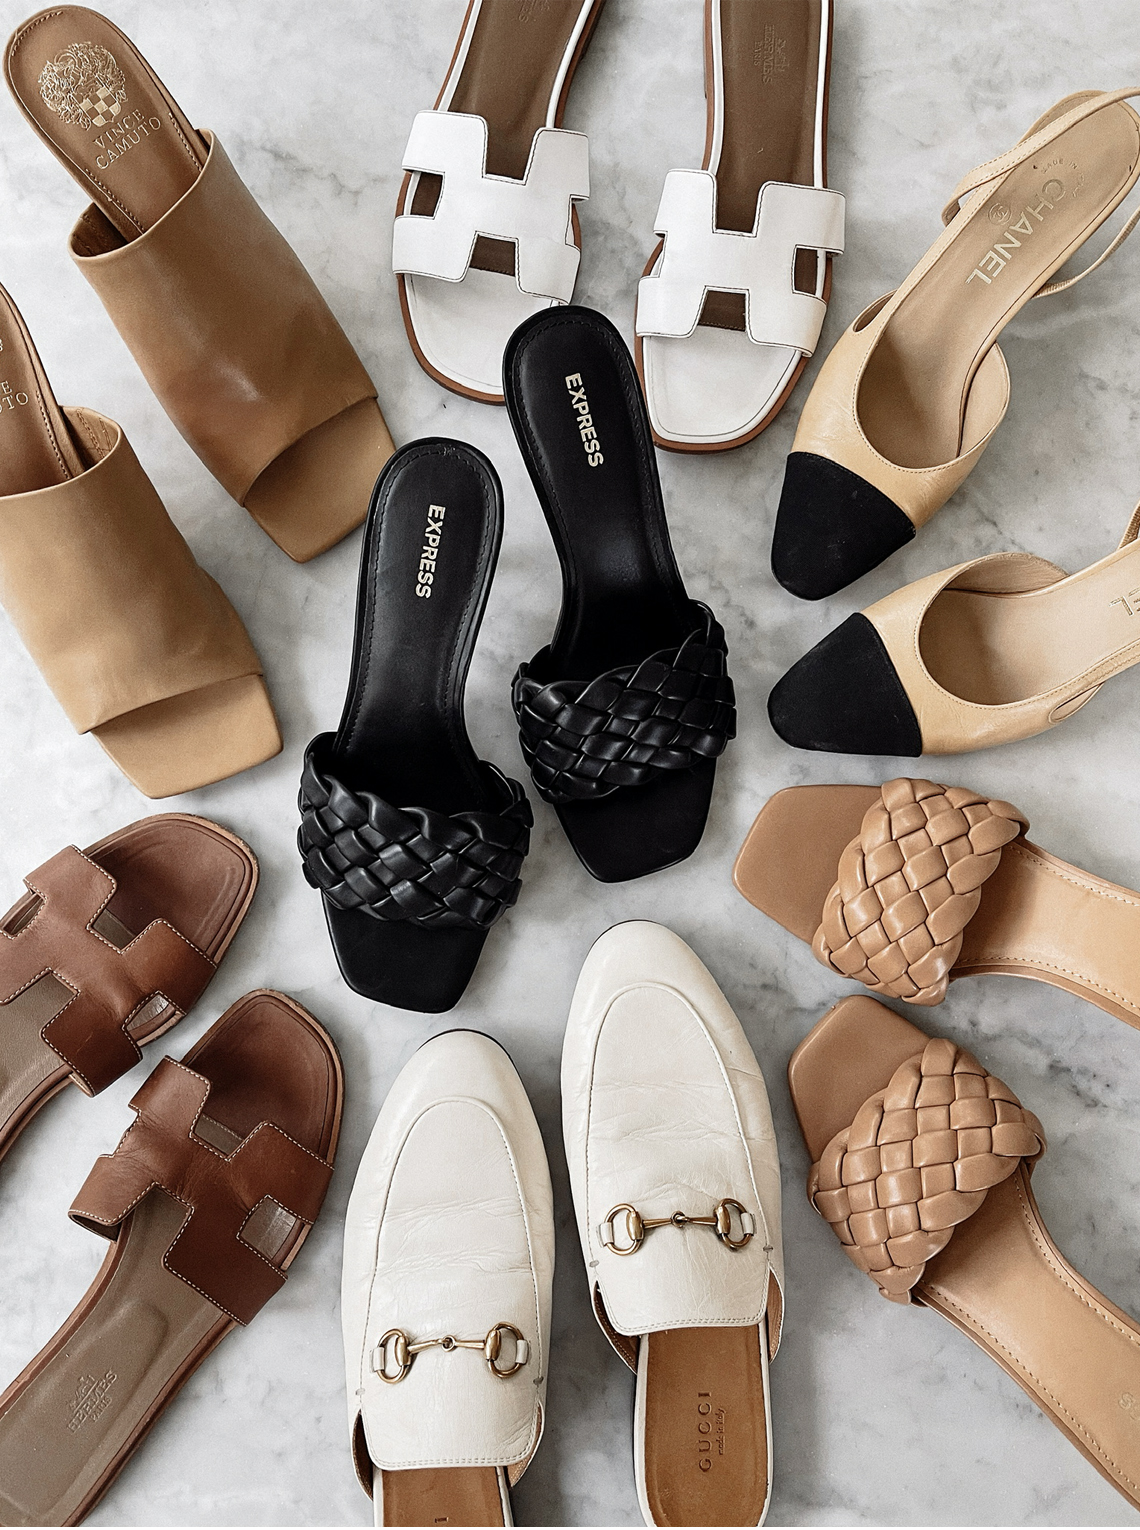 Fashion Jackson Spring shoes Gucci mule loafers hermes sandals express vince camuto mules chanel slingbacks